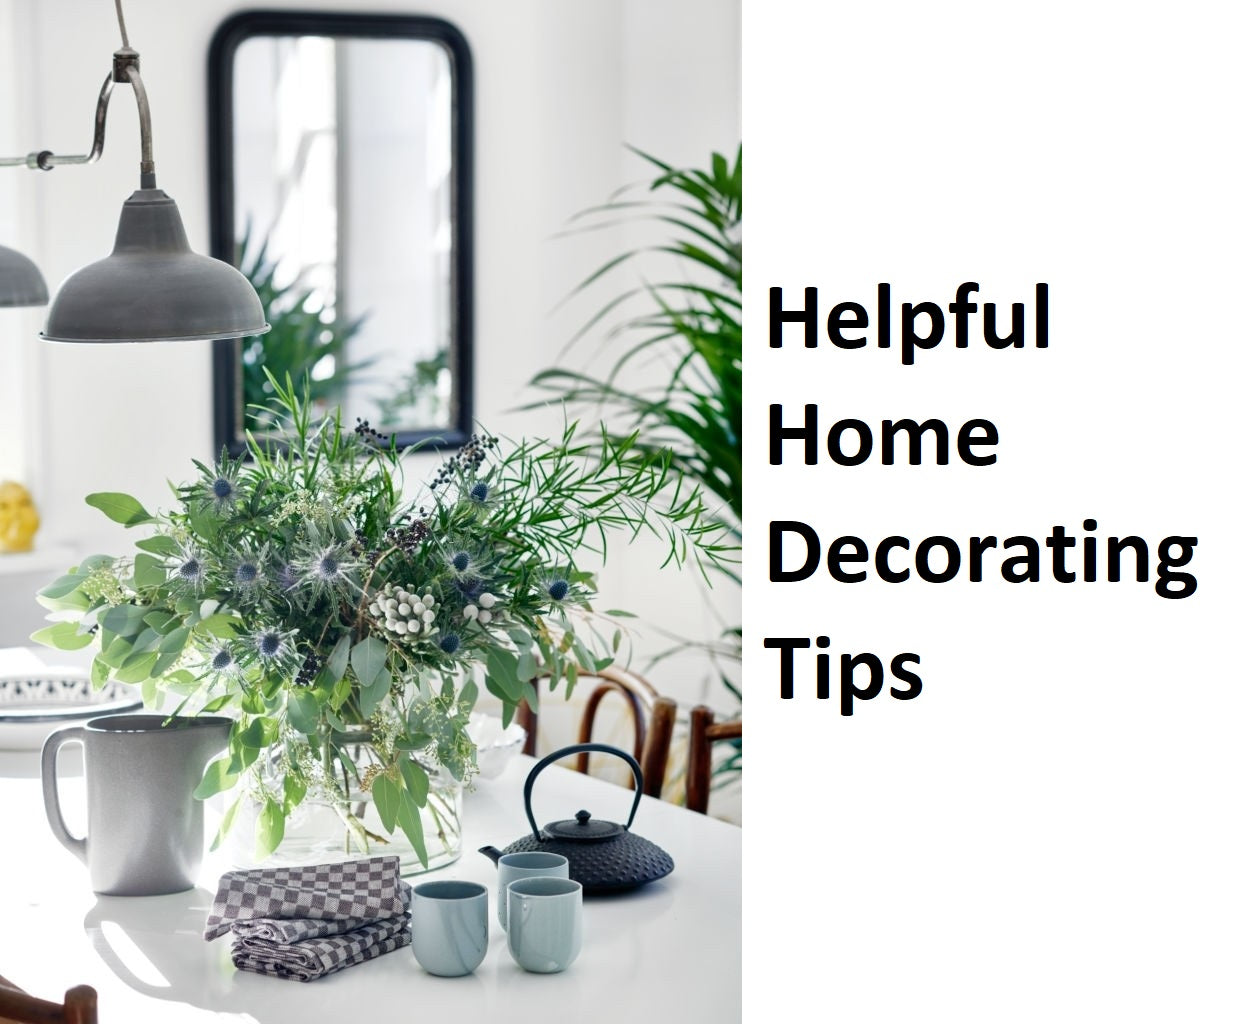 Helpful Home Decorating Tips,decorating a house where to start,home interior design ideas,home decor tips,home decorating ideas on a budget,modern home decor ideas,unique home decor ideas,decorating an old house on a budget,interior design ideas for small house